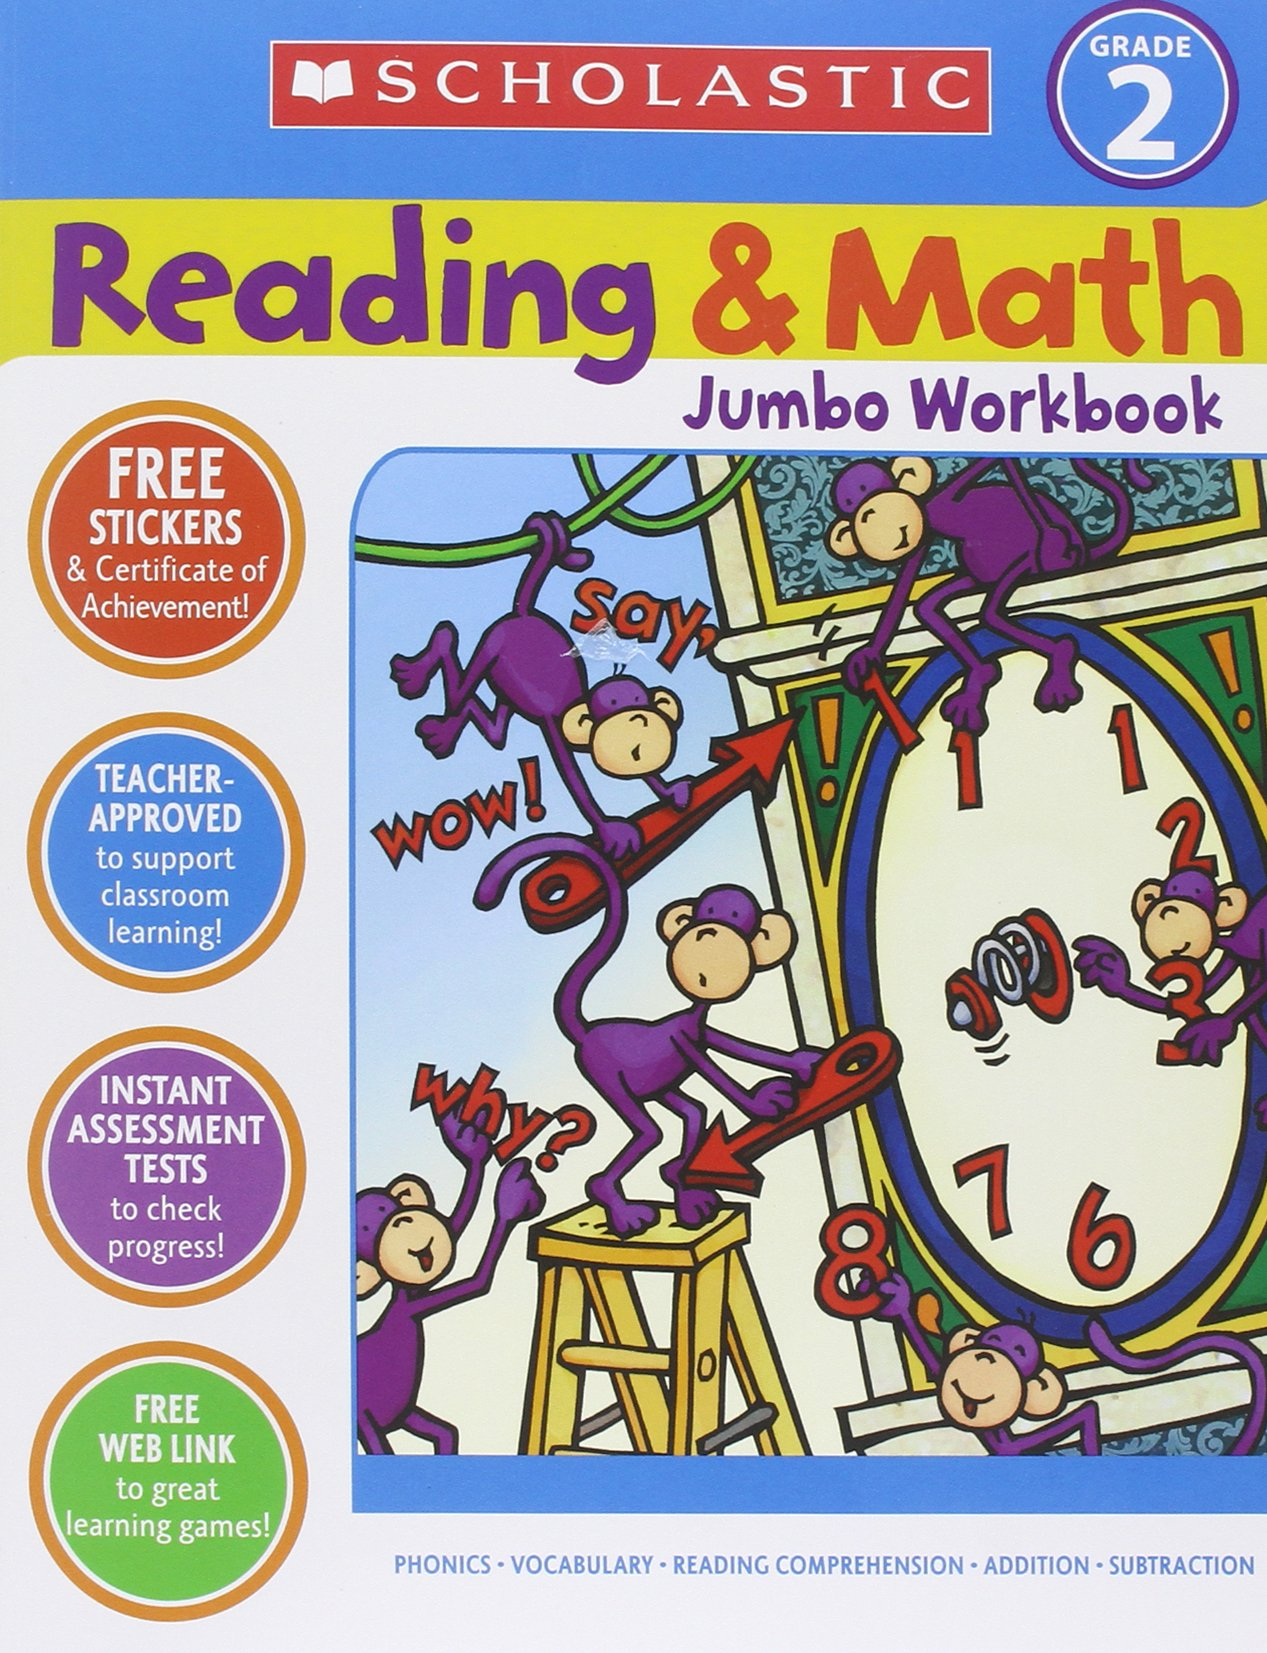 Amazon.com: Reading & Math Jumbo Workbook: Grade 2 (9780439786010):  Scholastic Teaching Resources, Terry Cooper: Books